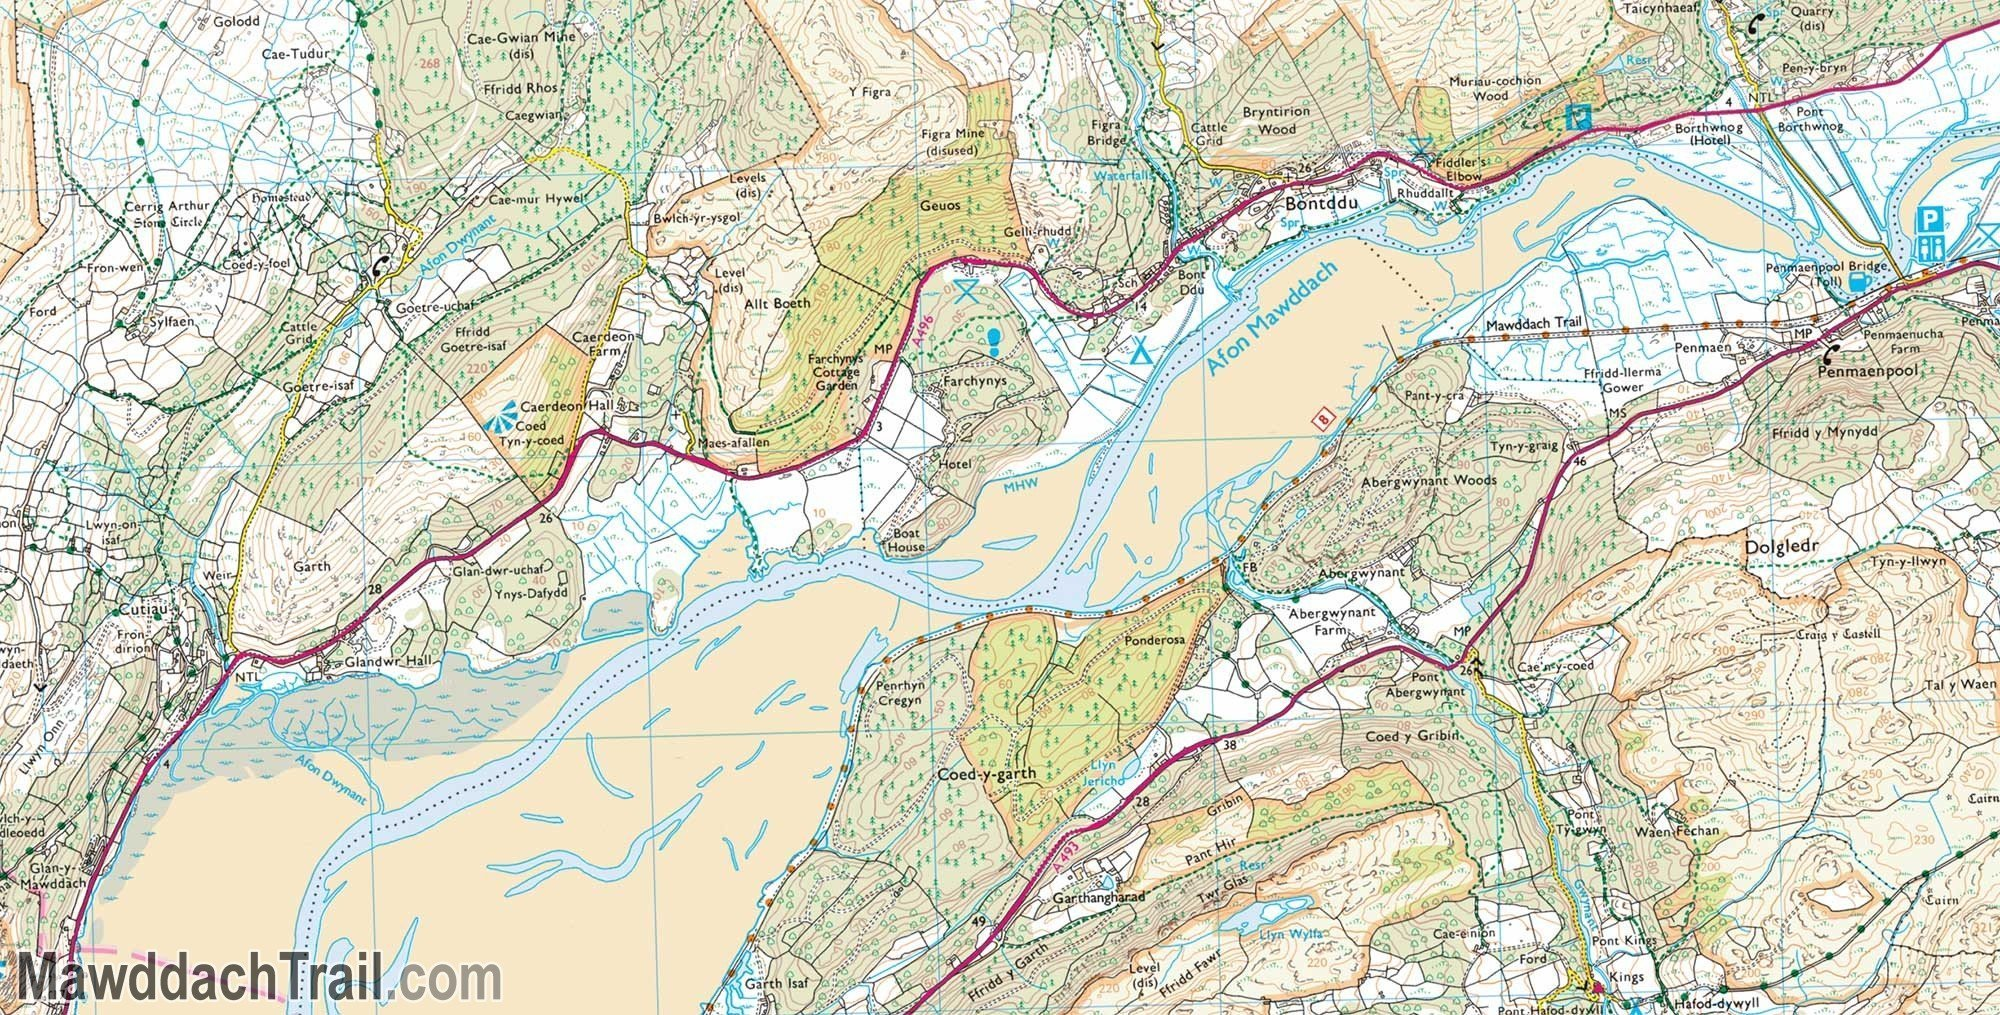 OS Explorer Map - Mawddach Trail (Middle Section)